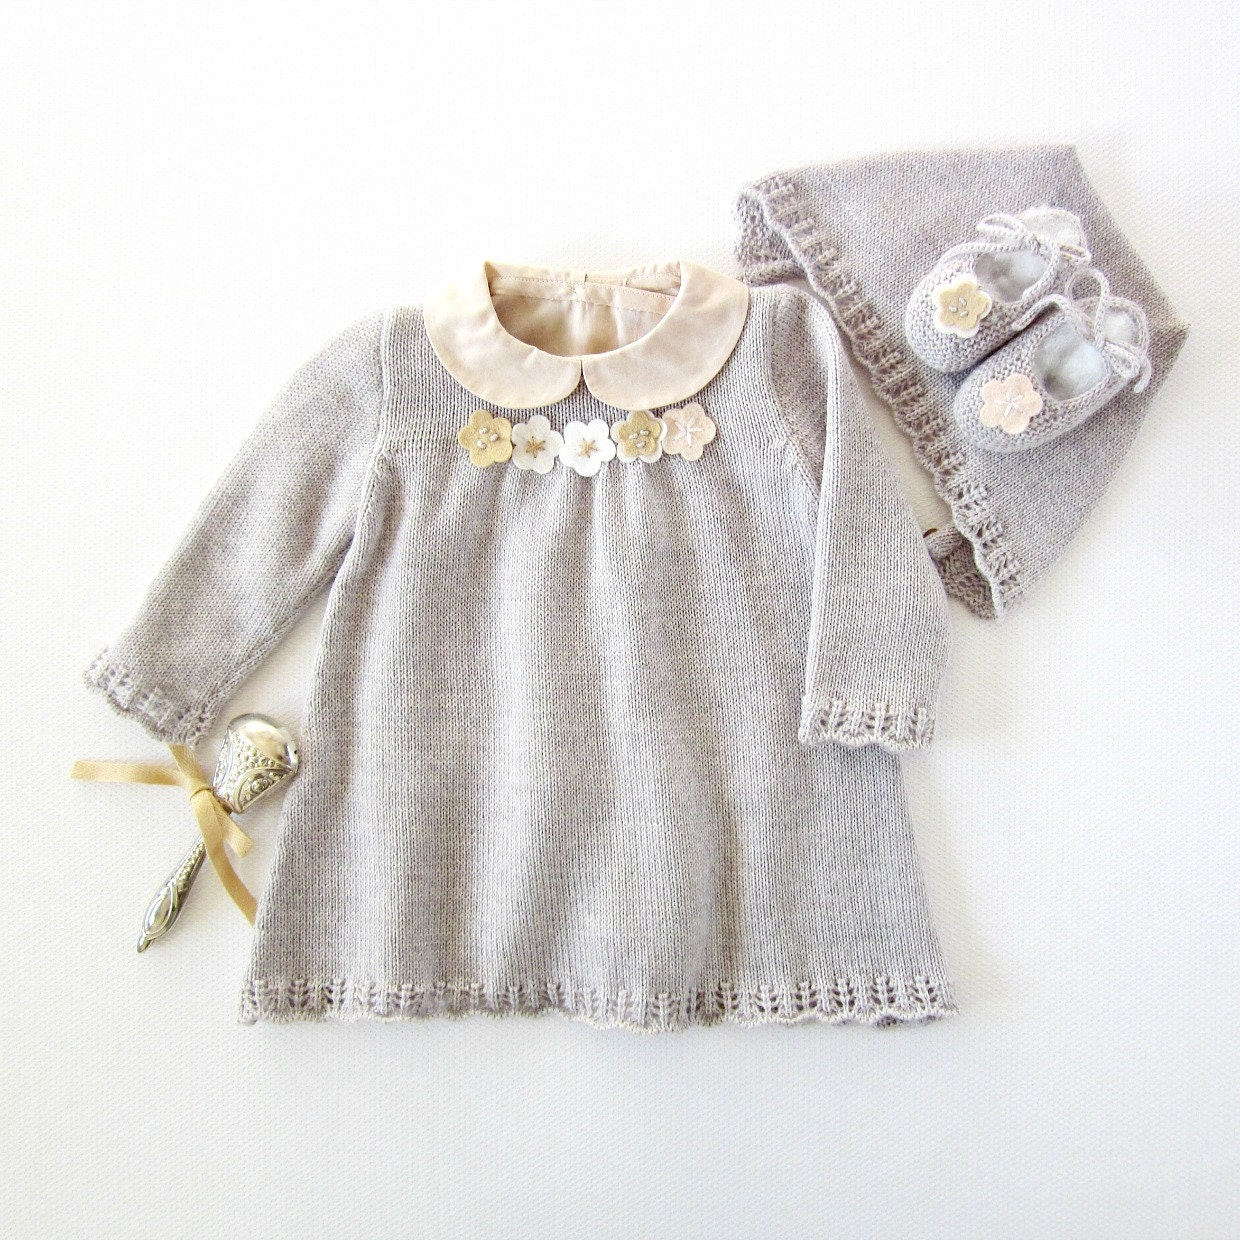 Knitted dress cap and shoes set for baby girl in gray. 100%